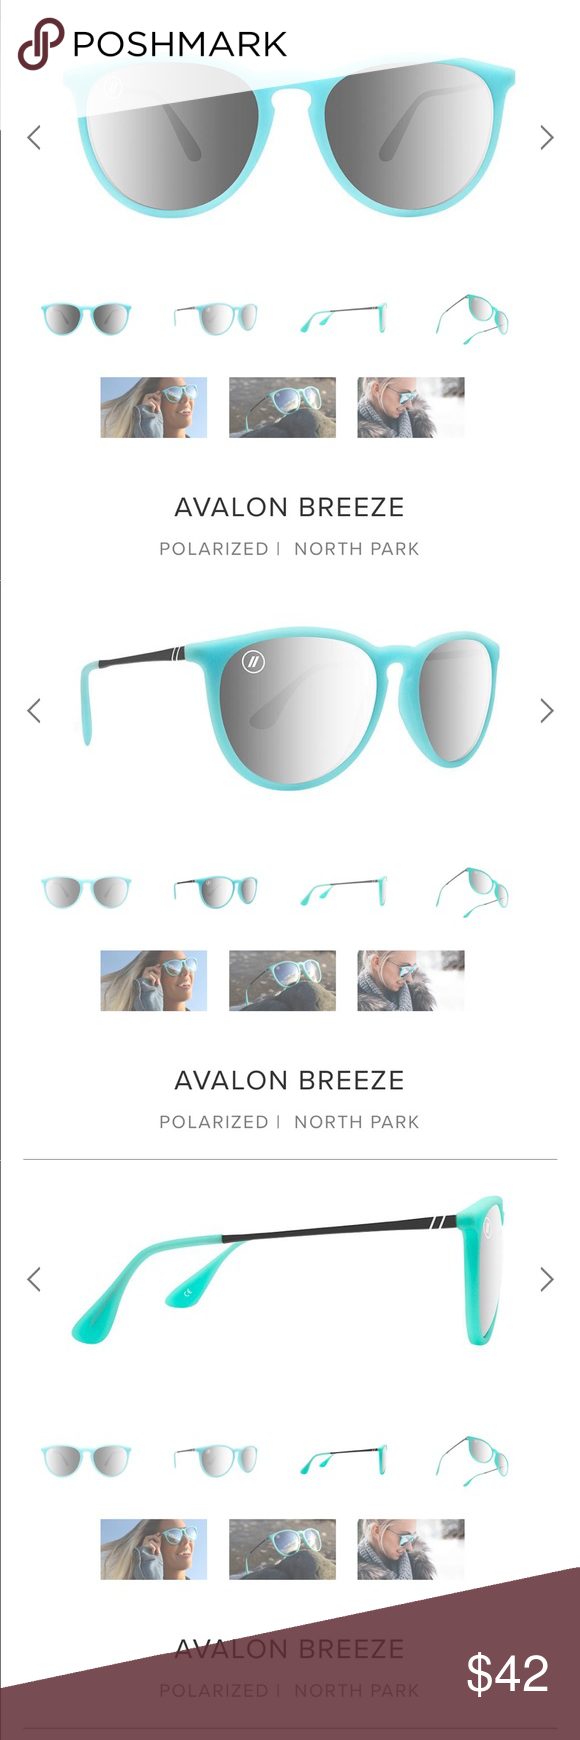 b1c276a60a7 Blenders Eyewear Avalon Breeze Sunglasses Brand new. Still in the box. The  color isn t what I thought it would be and it s past the time to return.